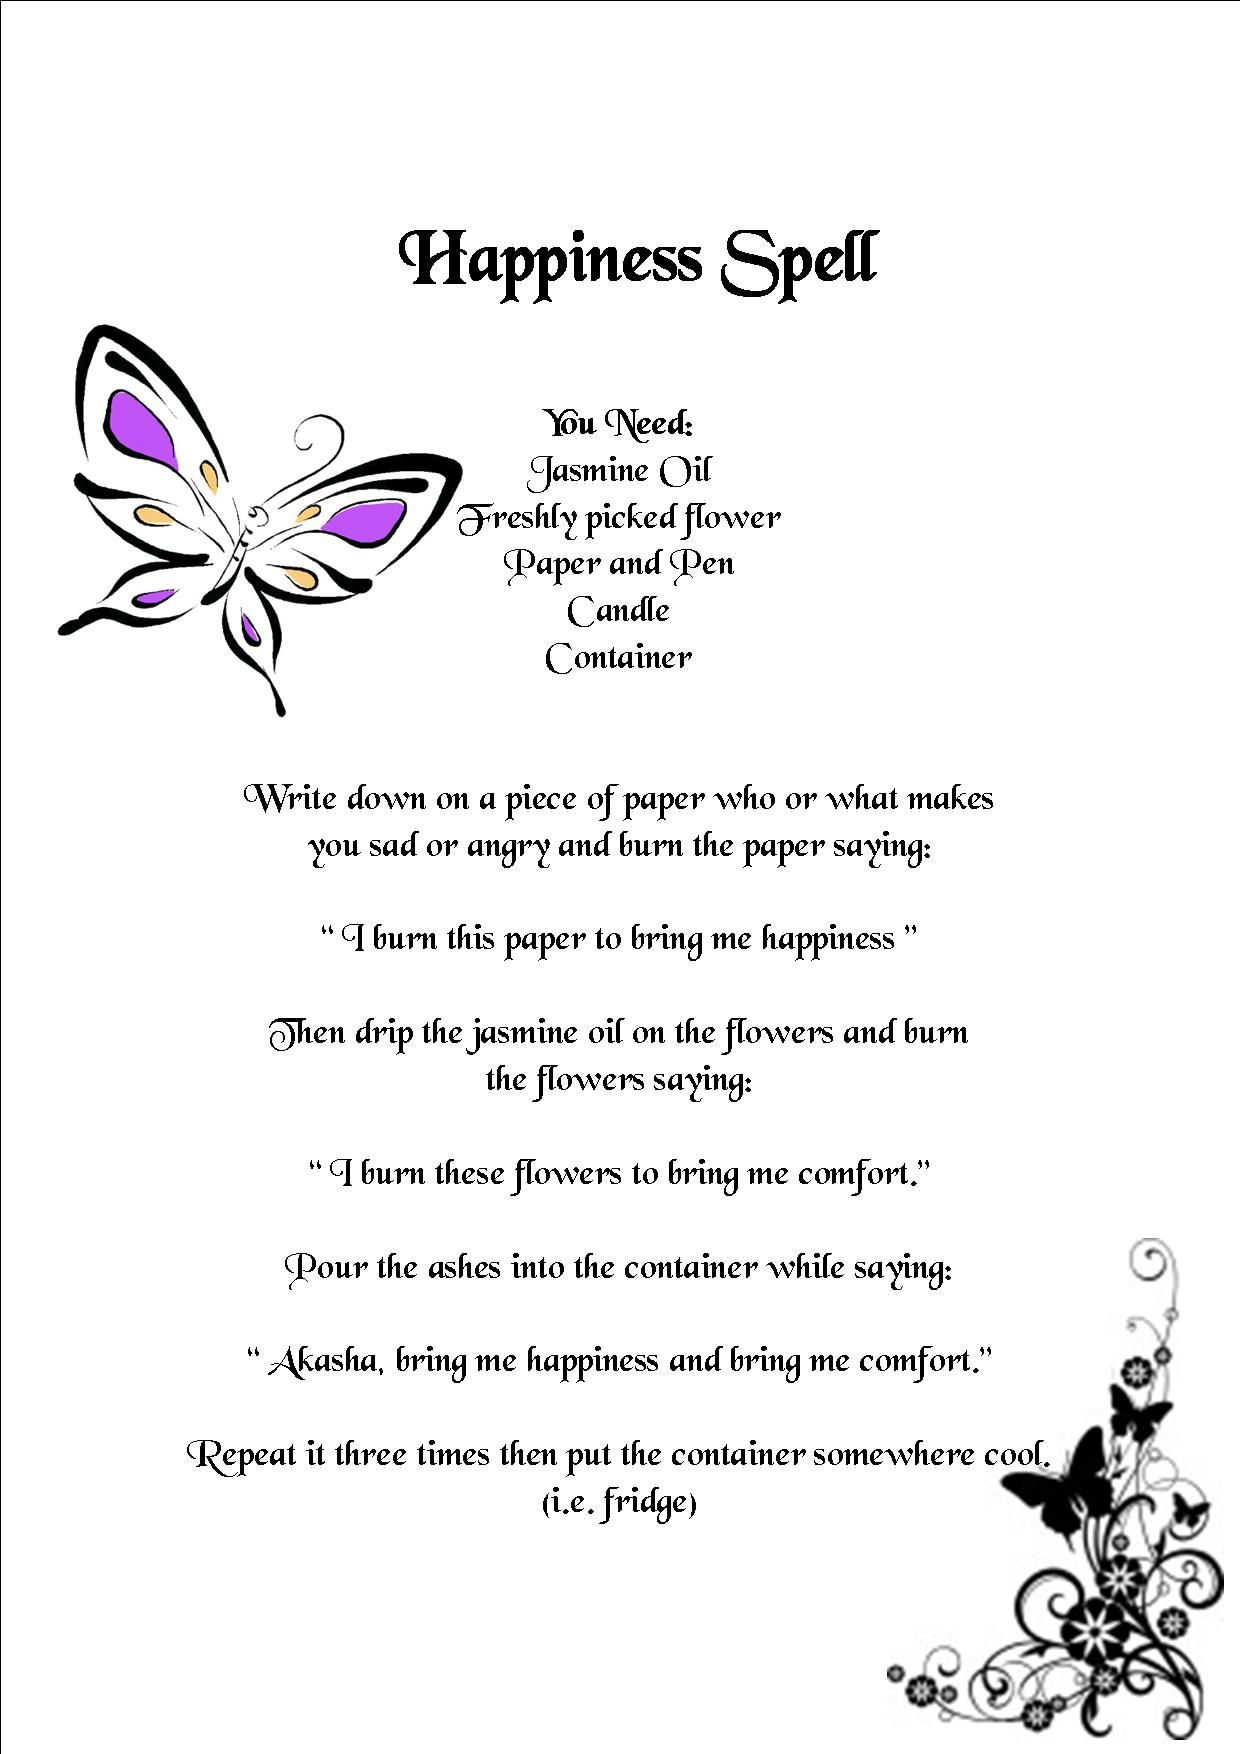 Happiness spell Don't freak out I just like it lol | Wicca ...